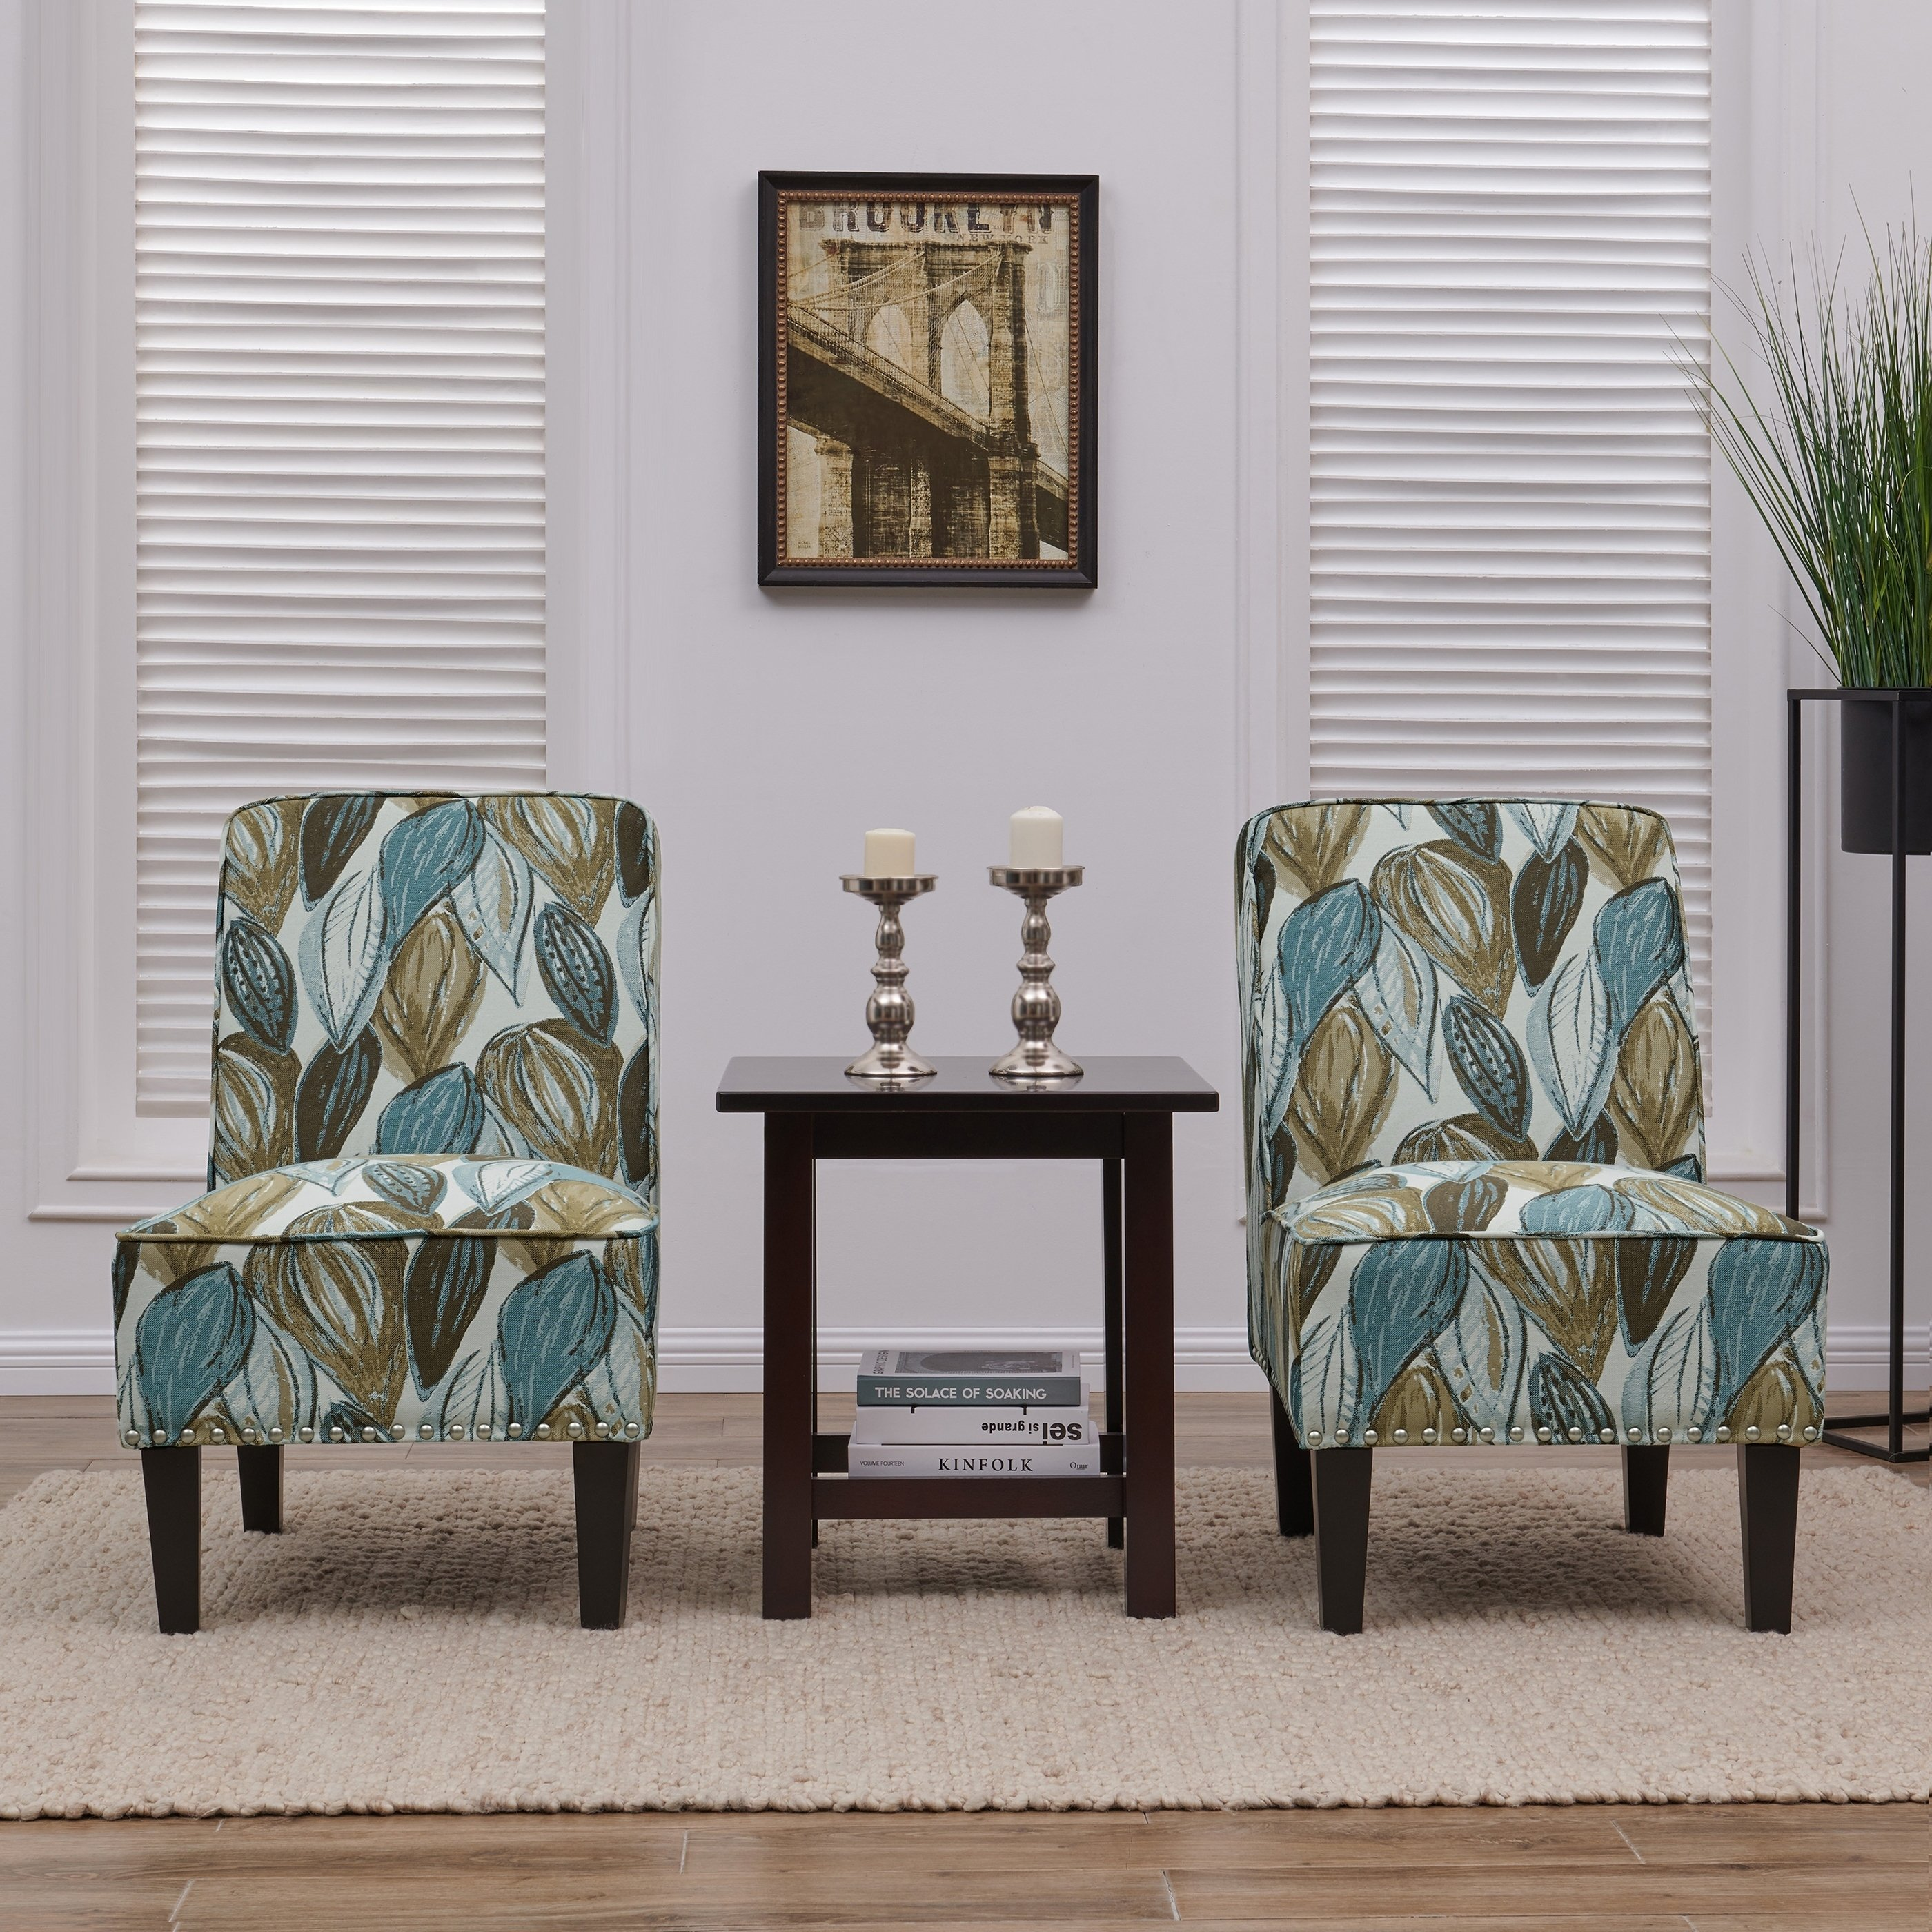 handy living brodee blue leaf armless accent chairs set chair with table room essentials hanging lights small patio outdoor rattan white gloss side country quilted runners chest